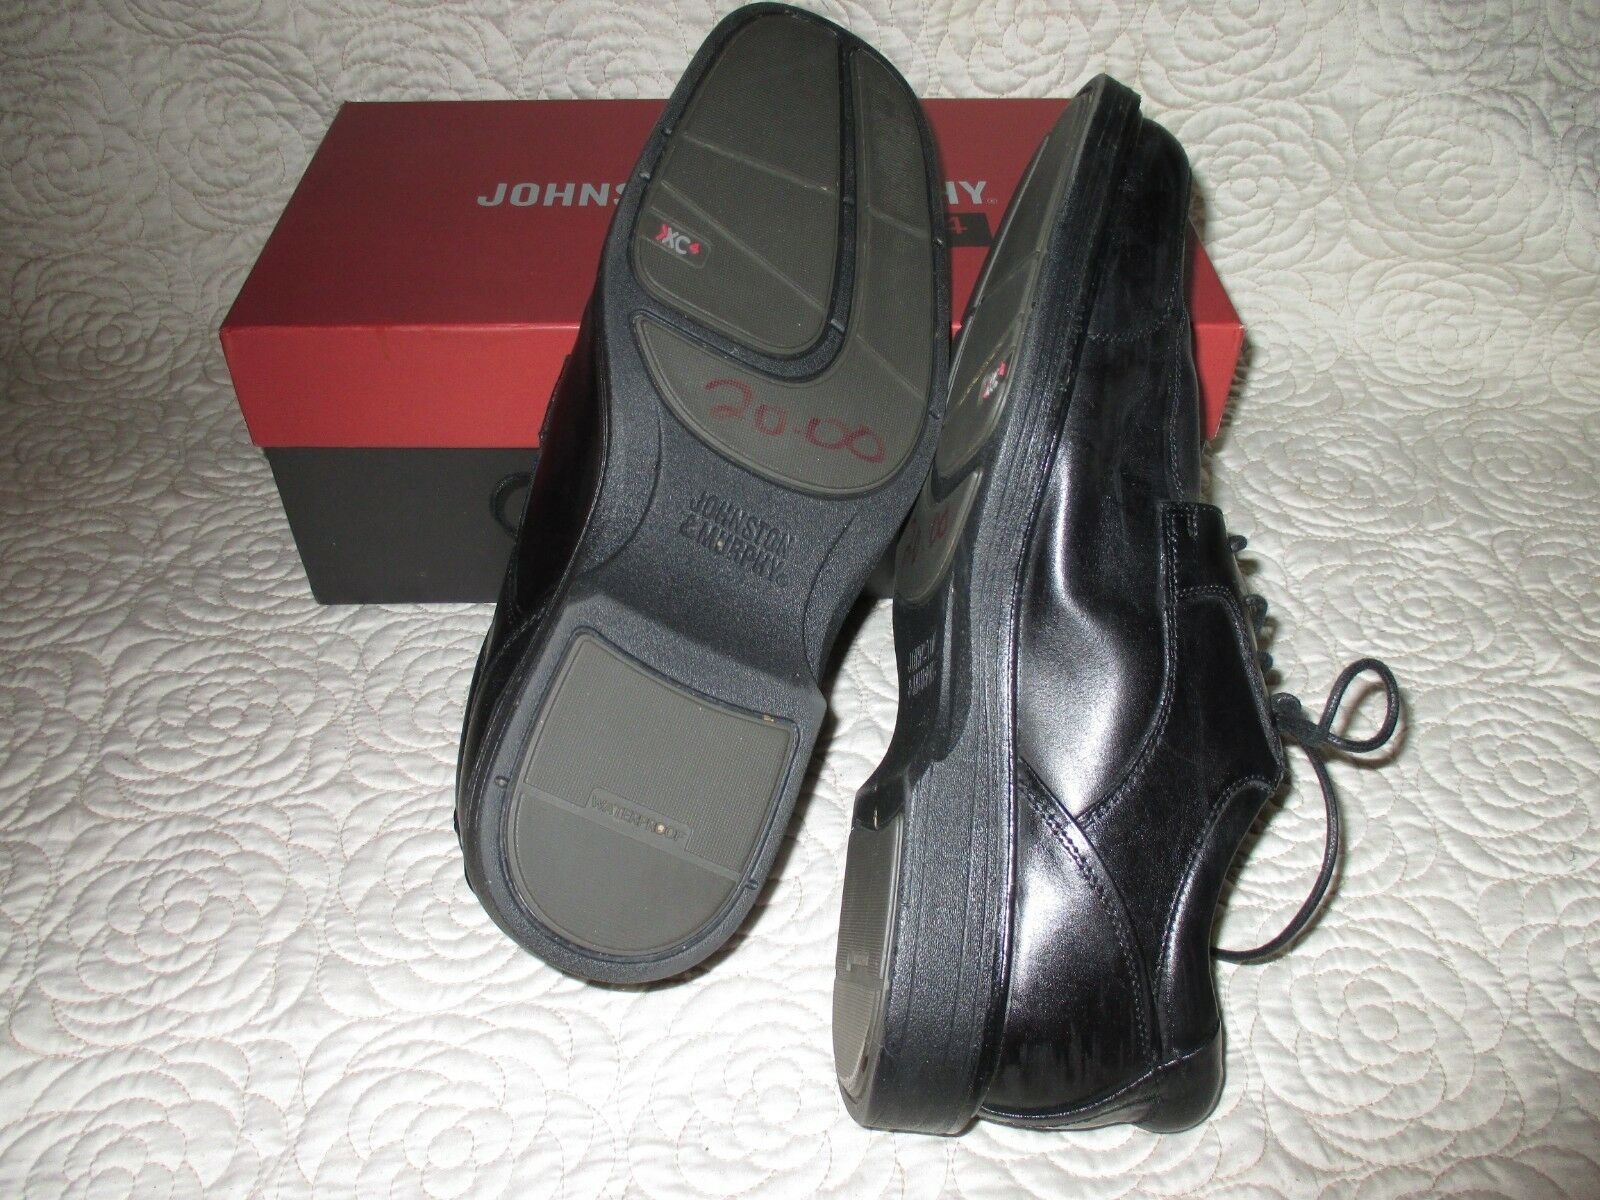 JOHNSON schwarz & MURPHY PATTISON LACE schwarz JOHNSON LEATHER XC4 Größe 10.5 M cb507a